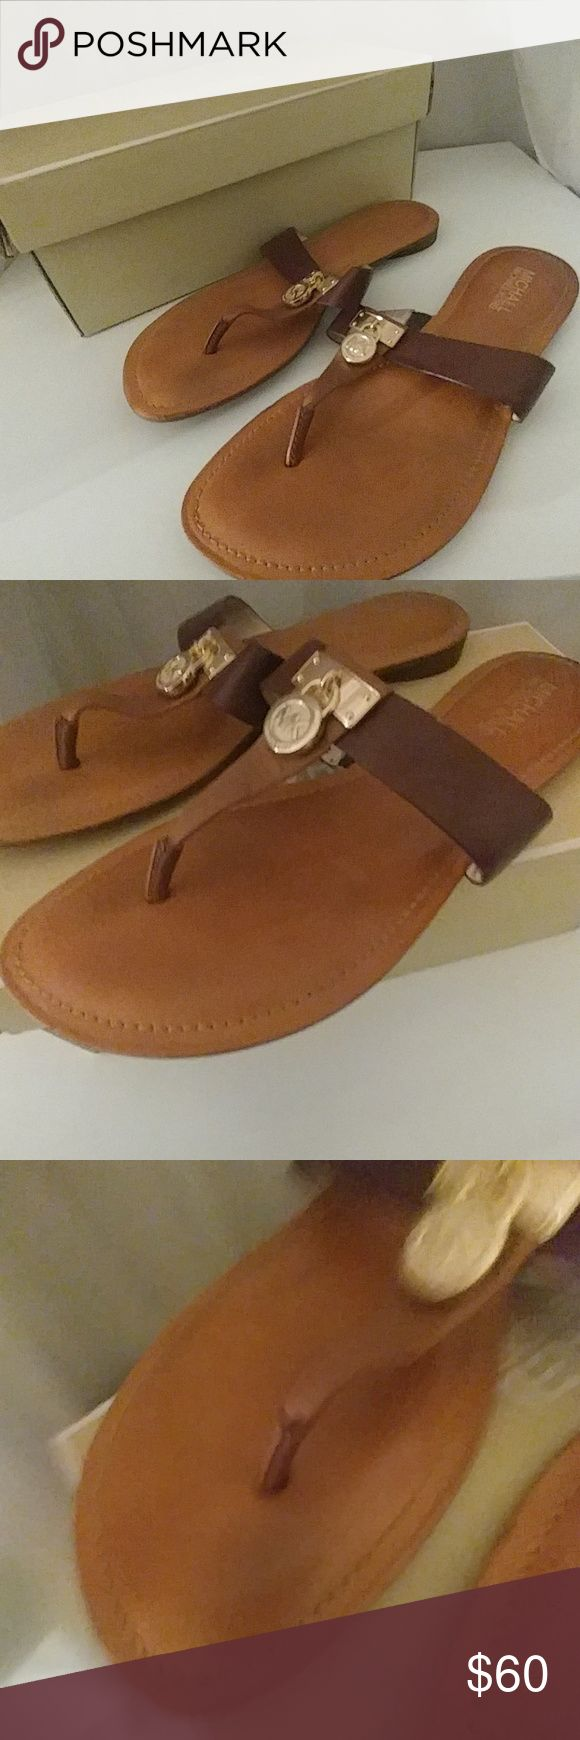 Gentle used MK flip flop thoug. Camel color MK Sandles. No box comes with Michael Kors Shoes Sandals